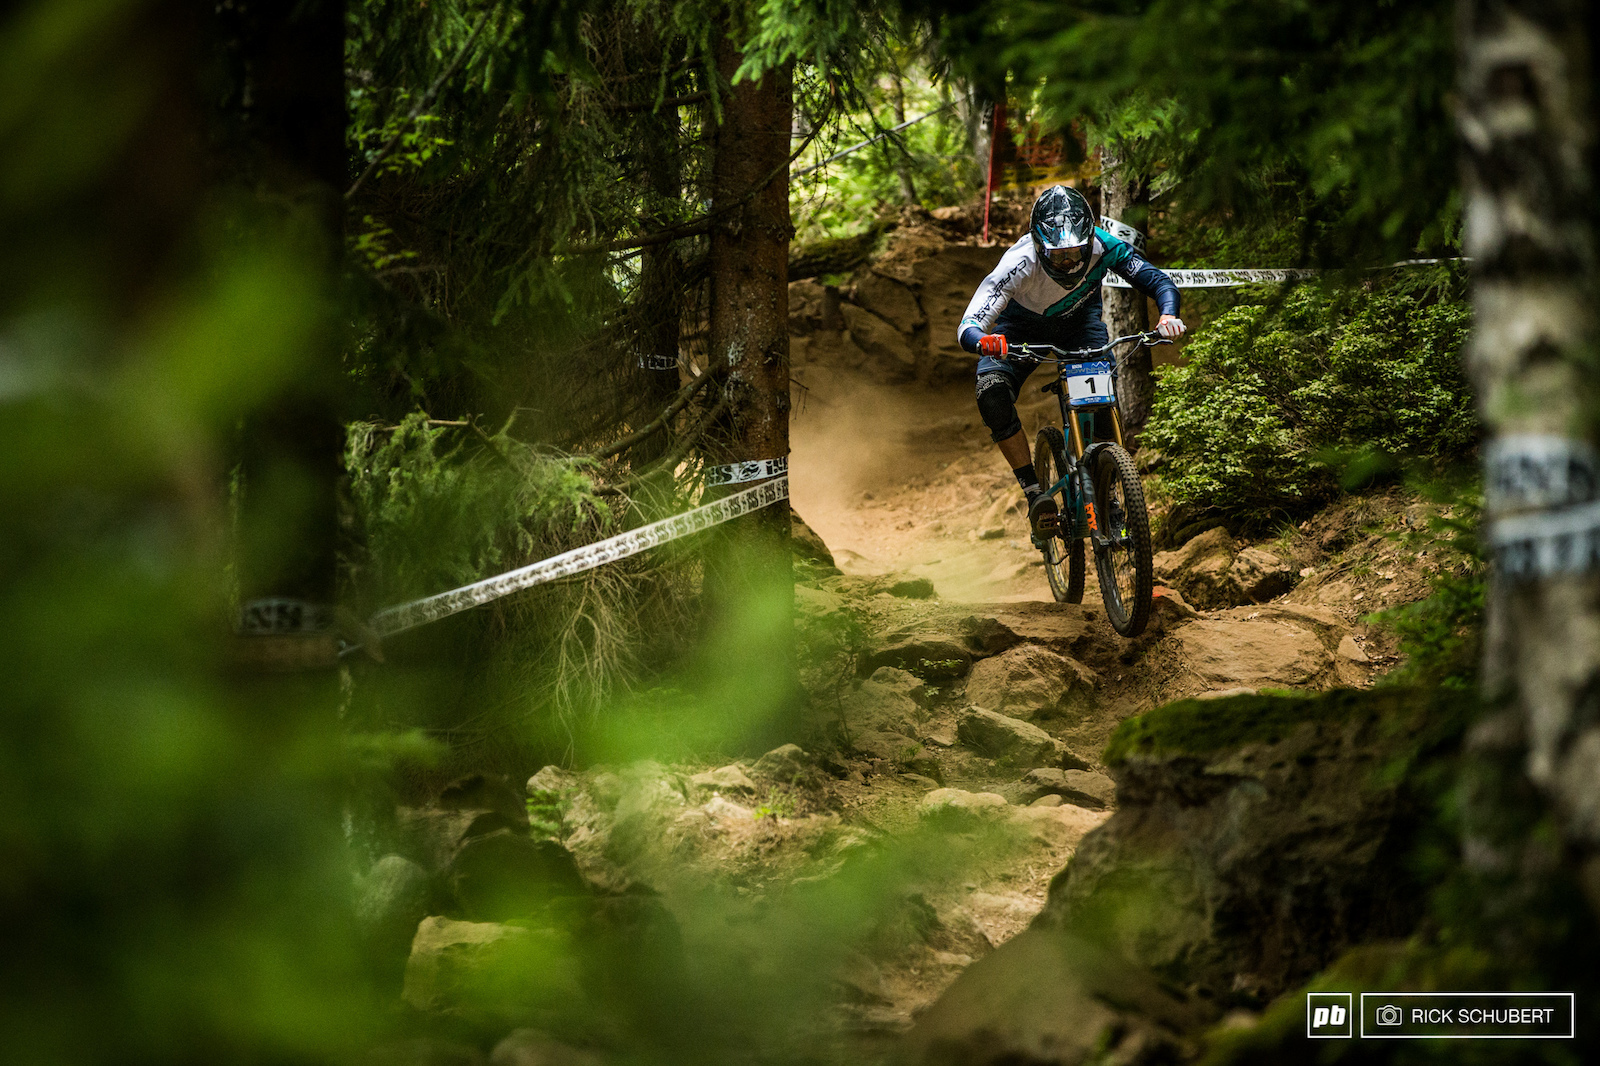 Joshua making his way through the gnarly rock sections at the iXS European DH Cup in Spicak